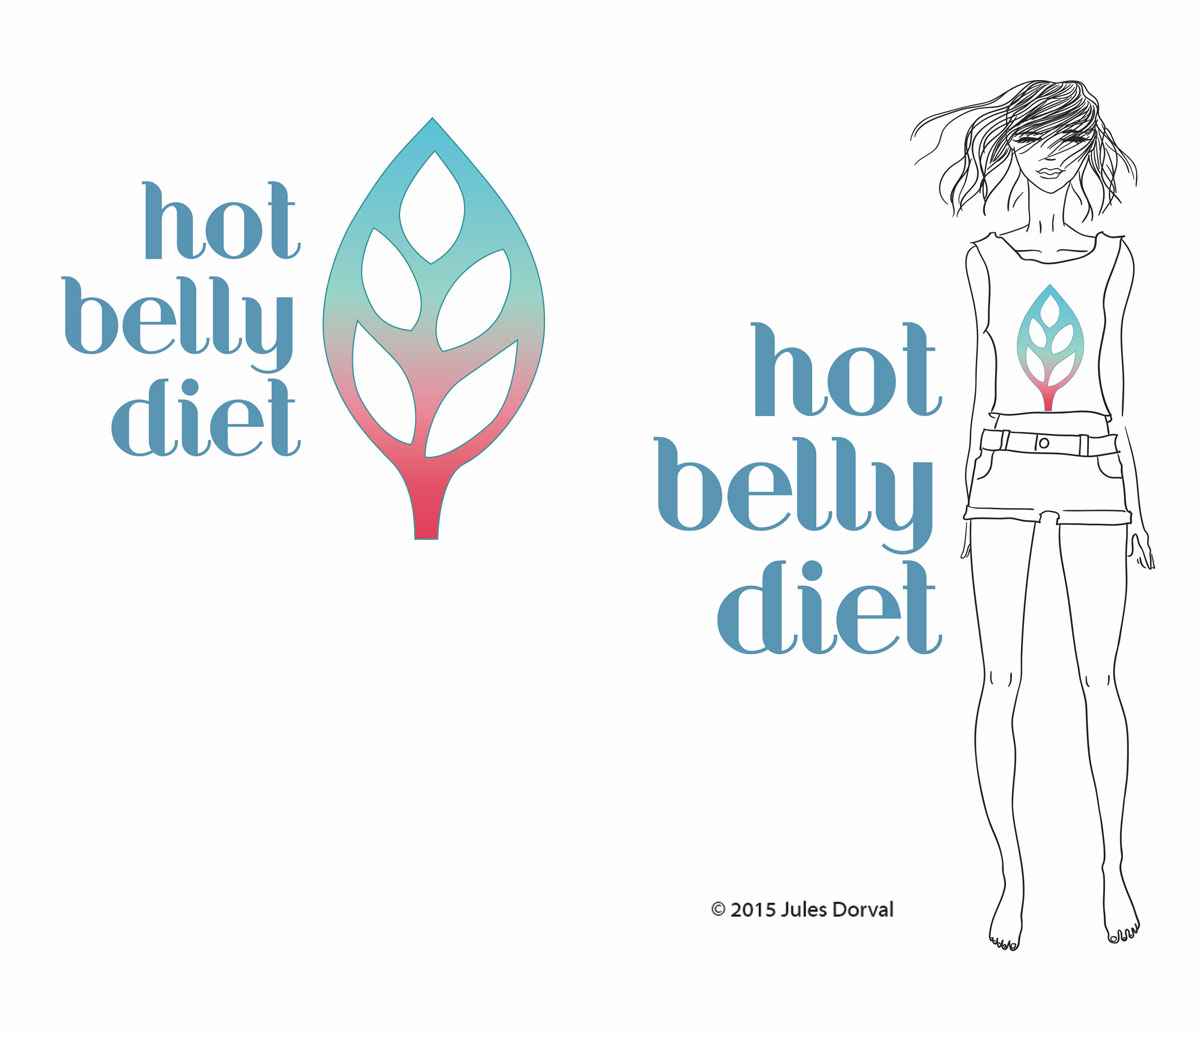 hot belly dieet logo design jules dorval